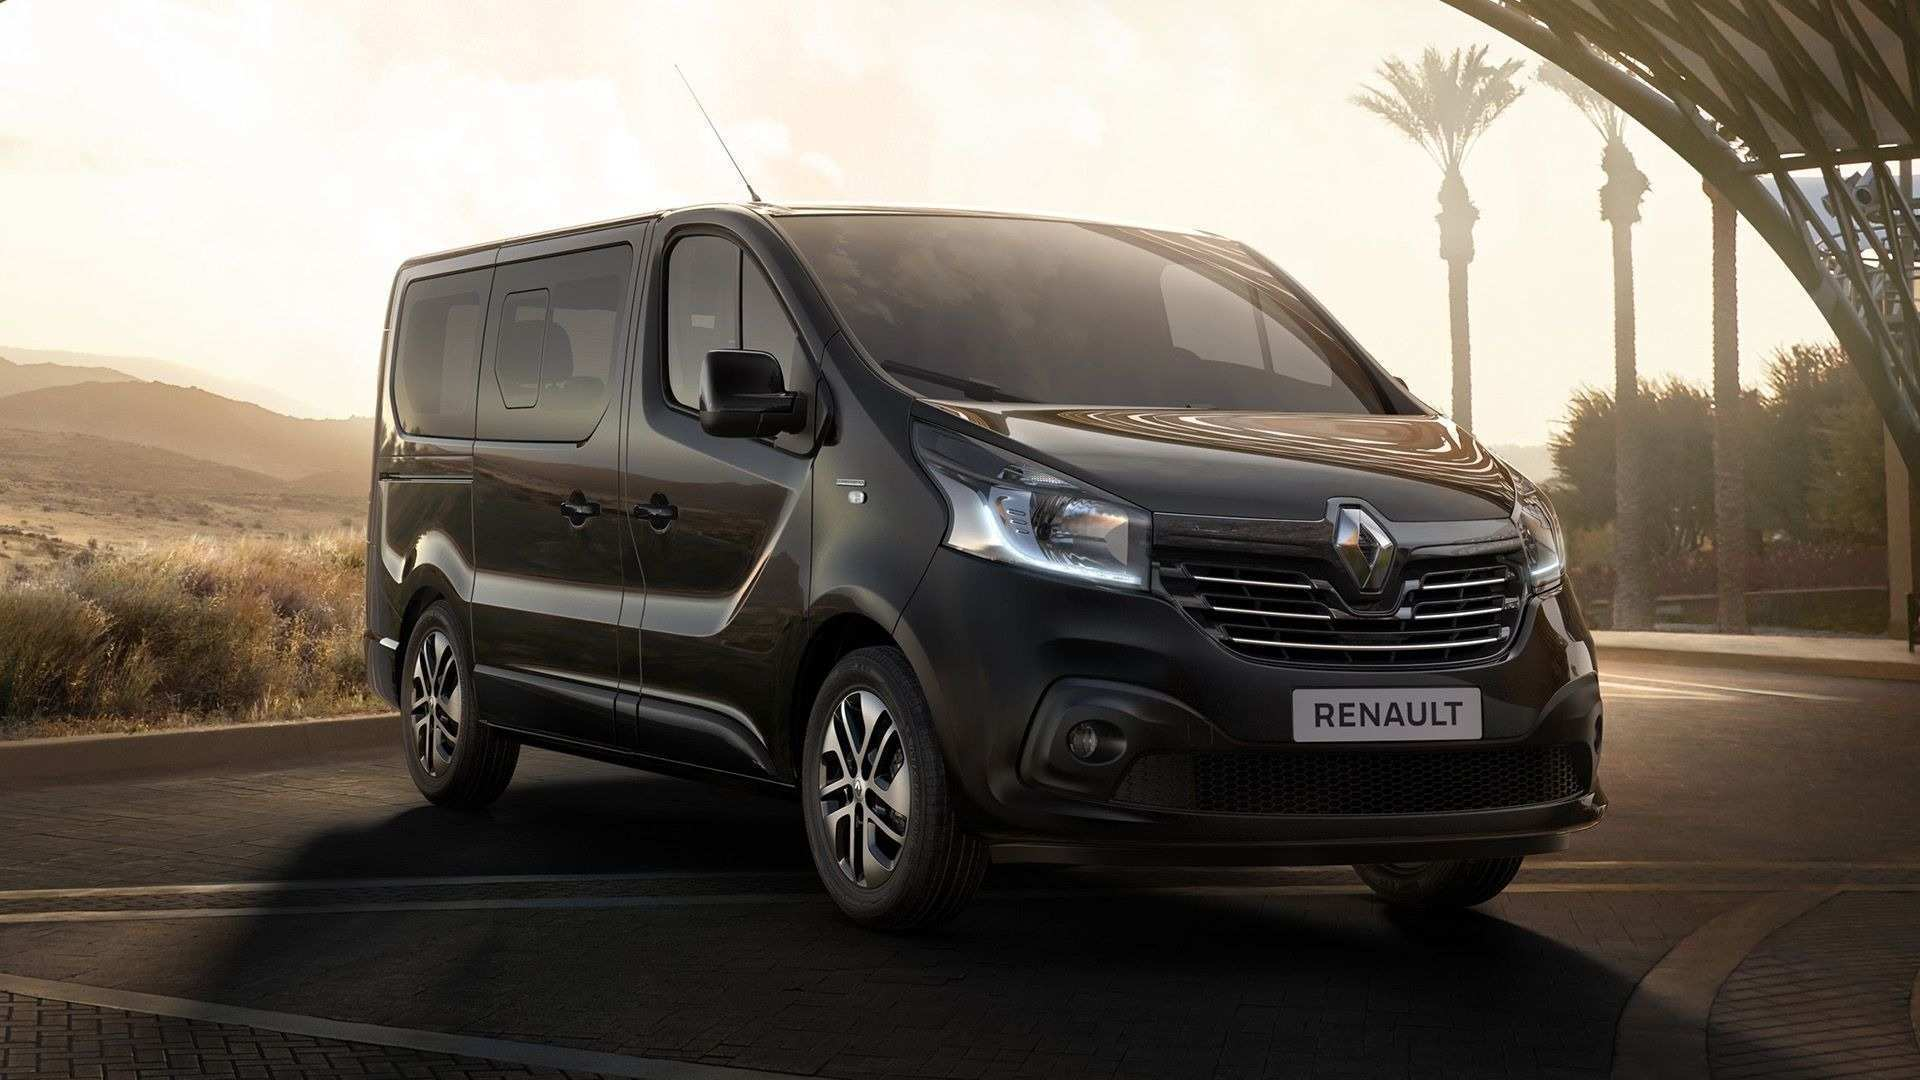 33 New 2019 Renault Trafic Exterior for 2019 Renault Trafic